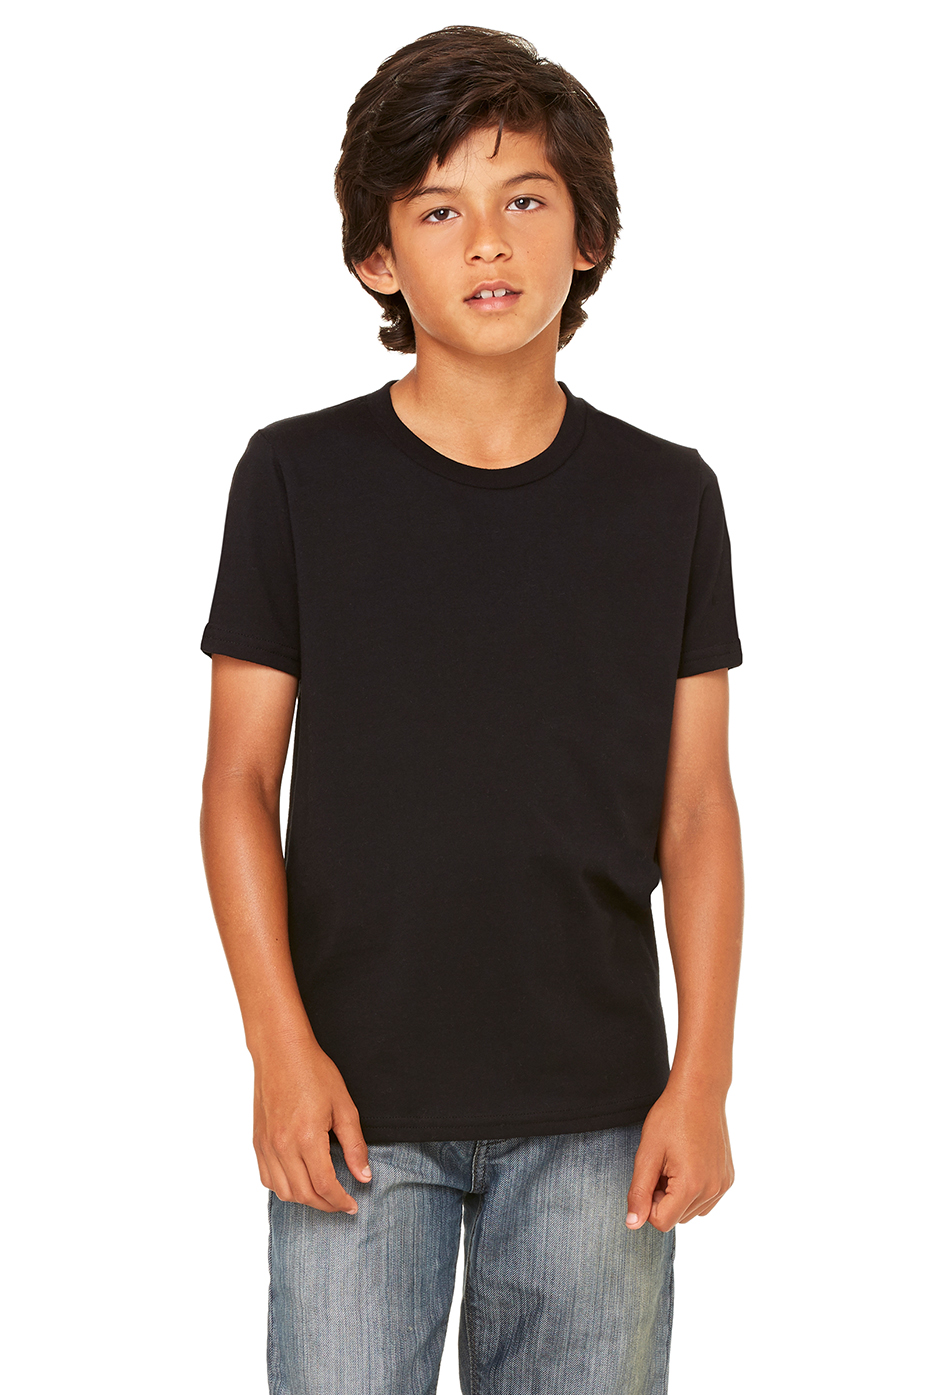 Youth black t shirt - Youth Jersey Short Sleeve Tee